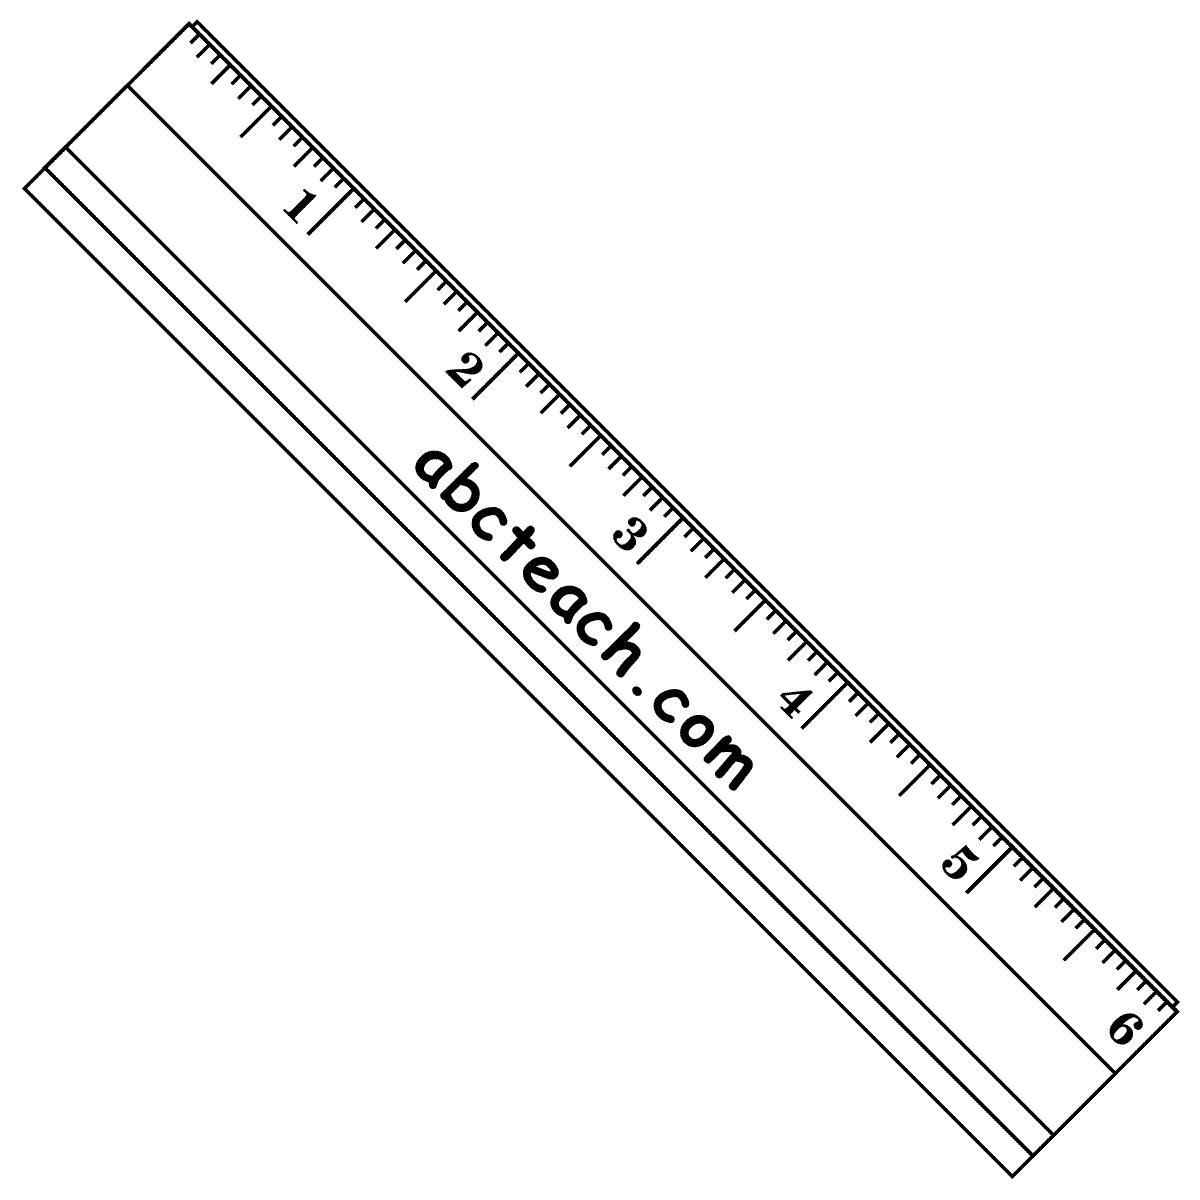 Inch Ruler Clipart Free Clip Art Images